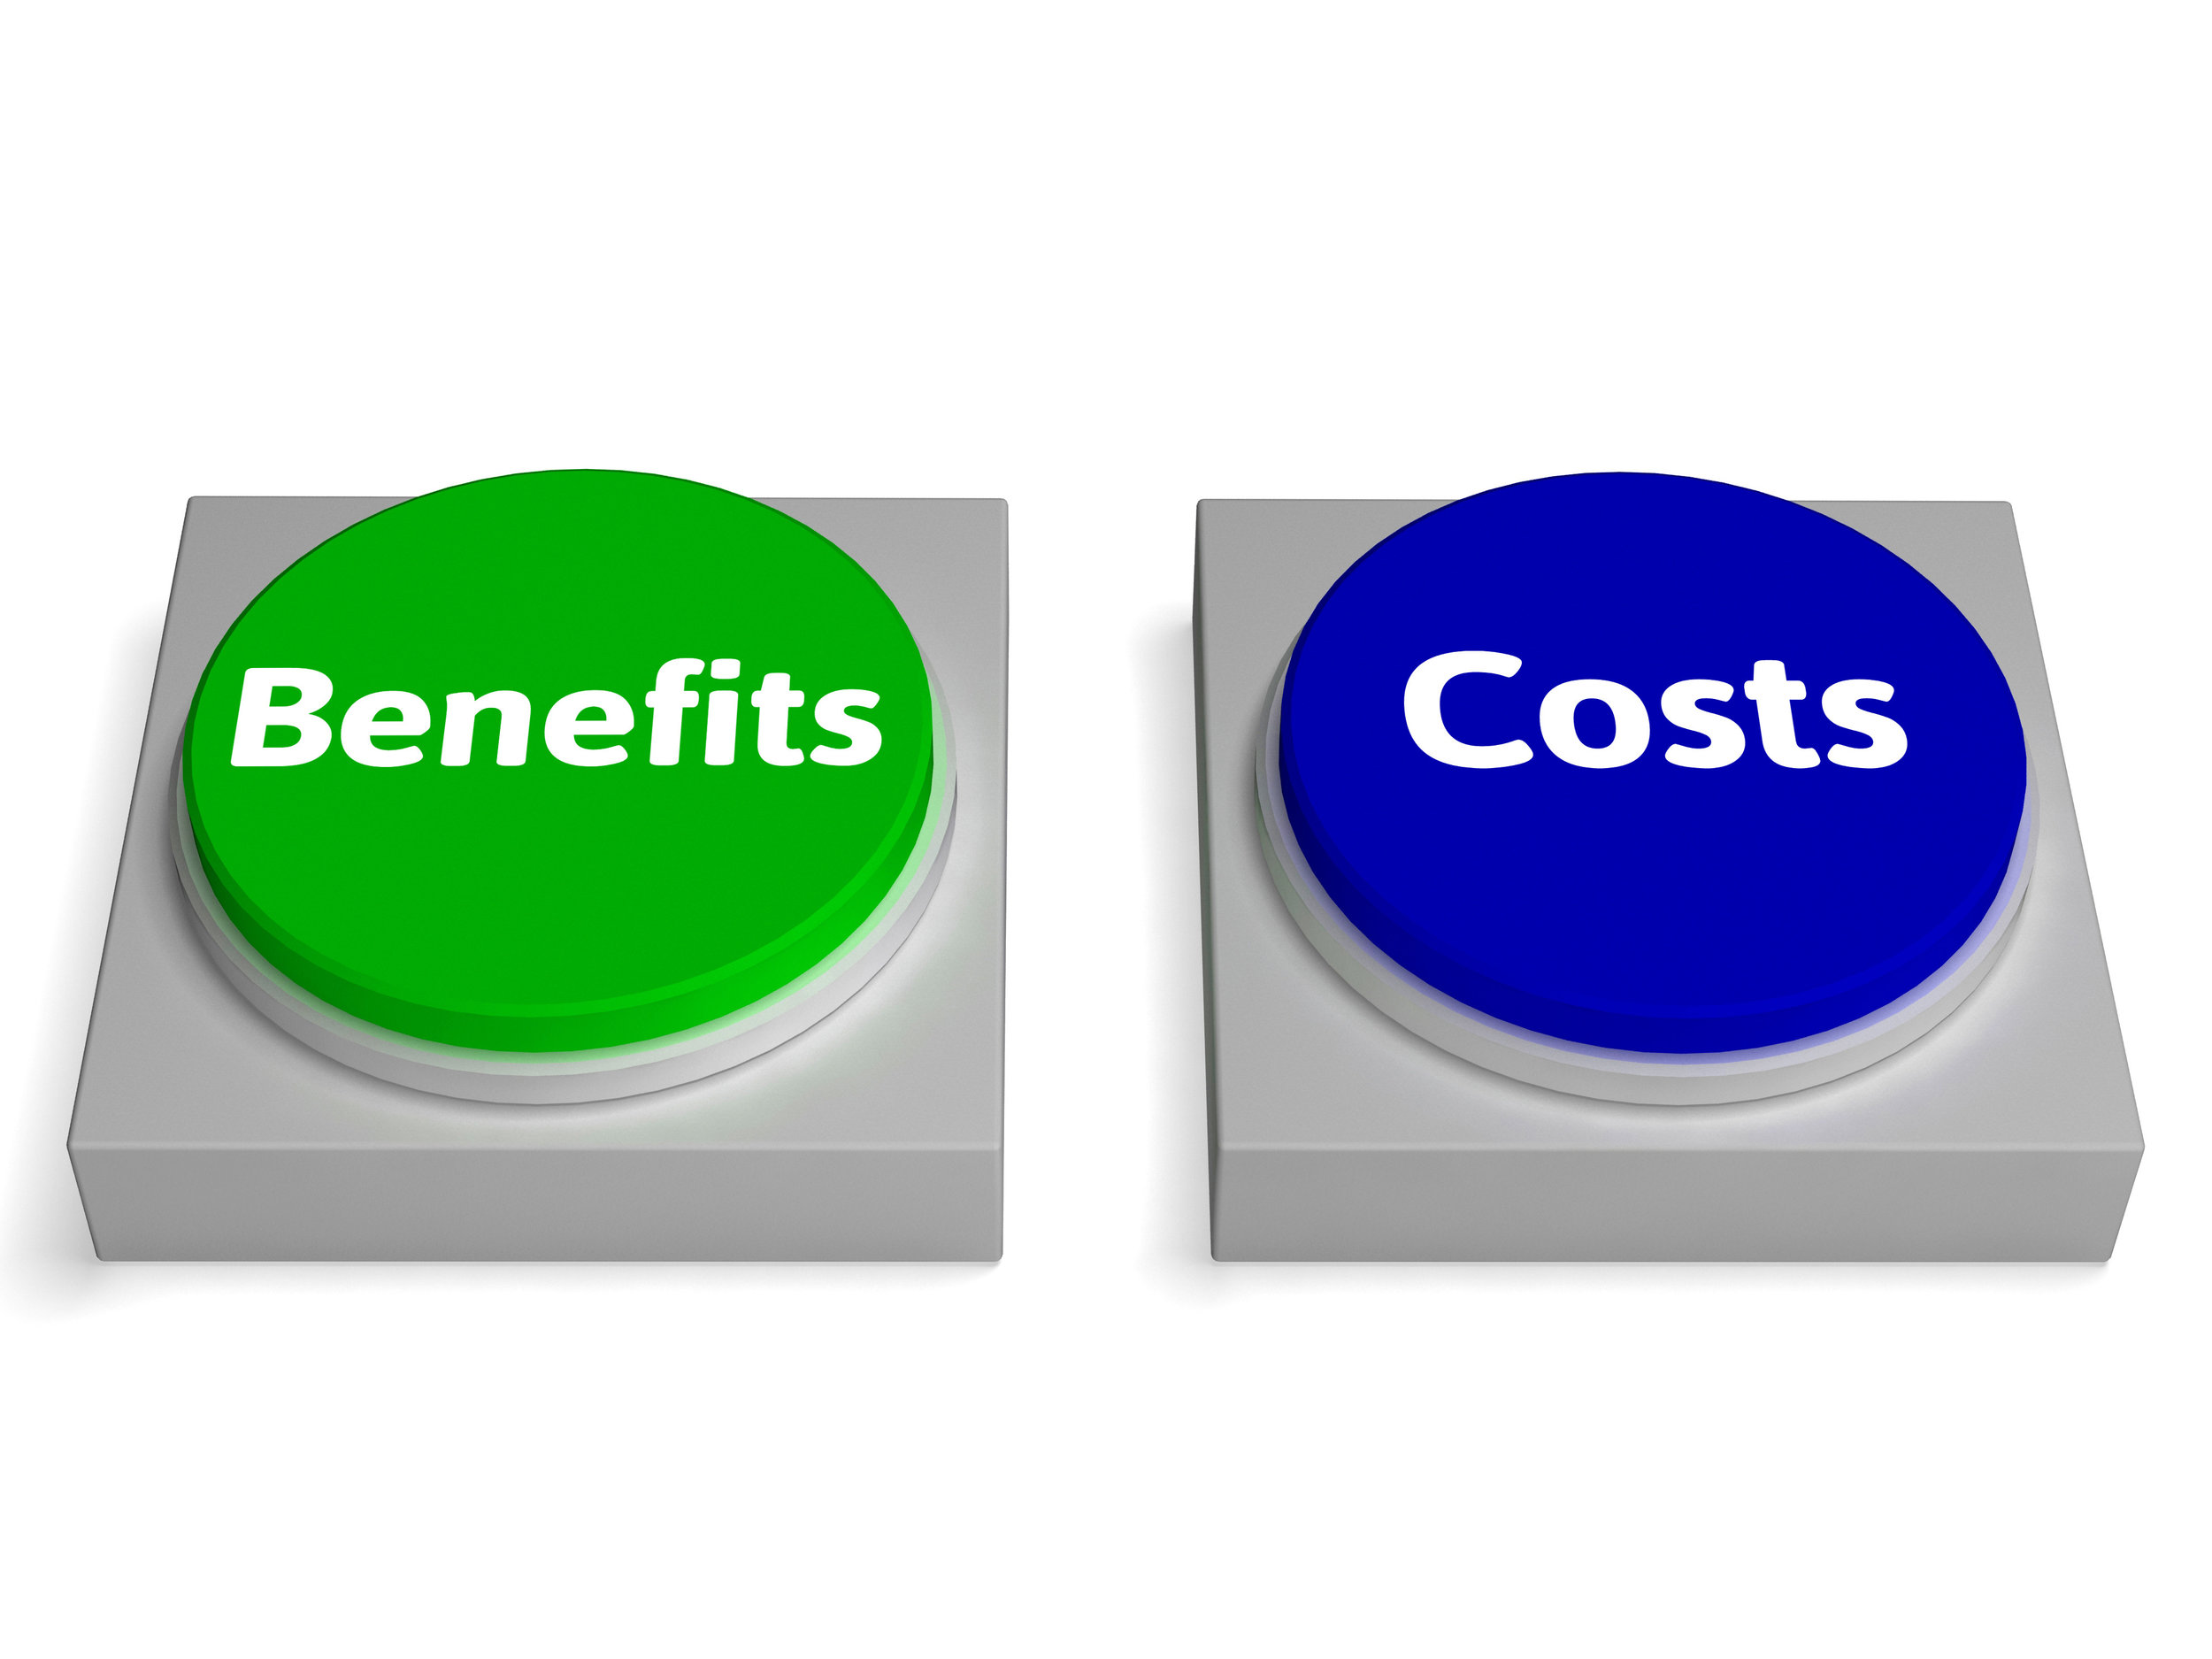 costs-benefits-buttons-shows-cost-benefit-analysis_f1Kr9QwO.jpg